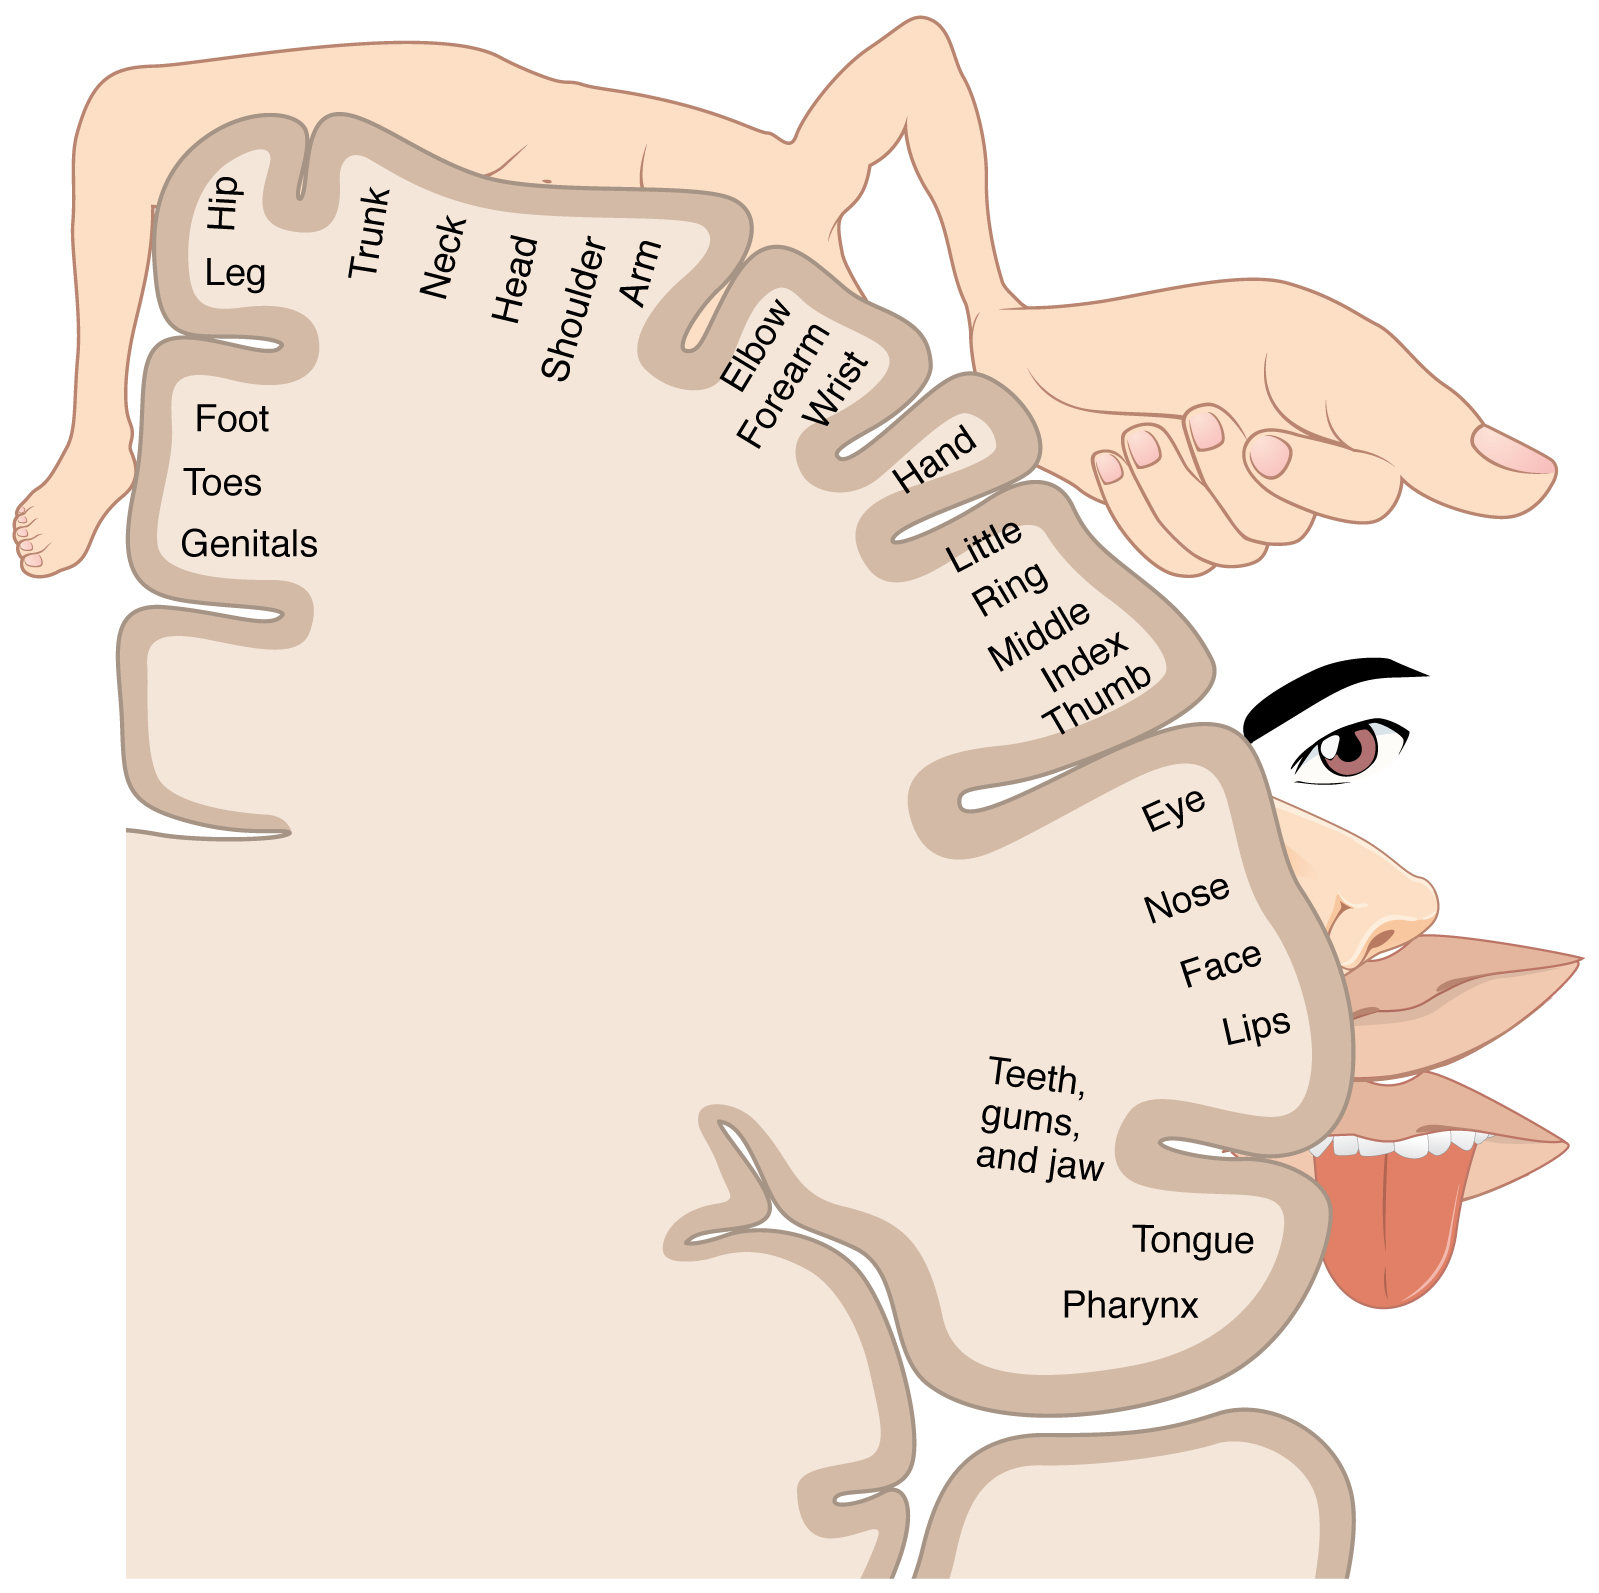 This image shows the areas of the brain that control and respond to the different senses.